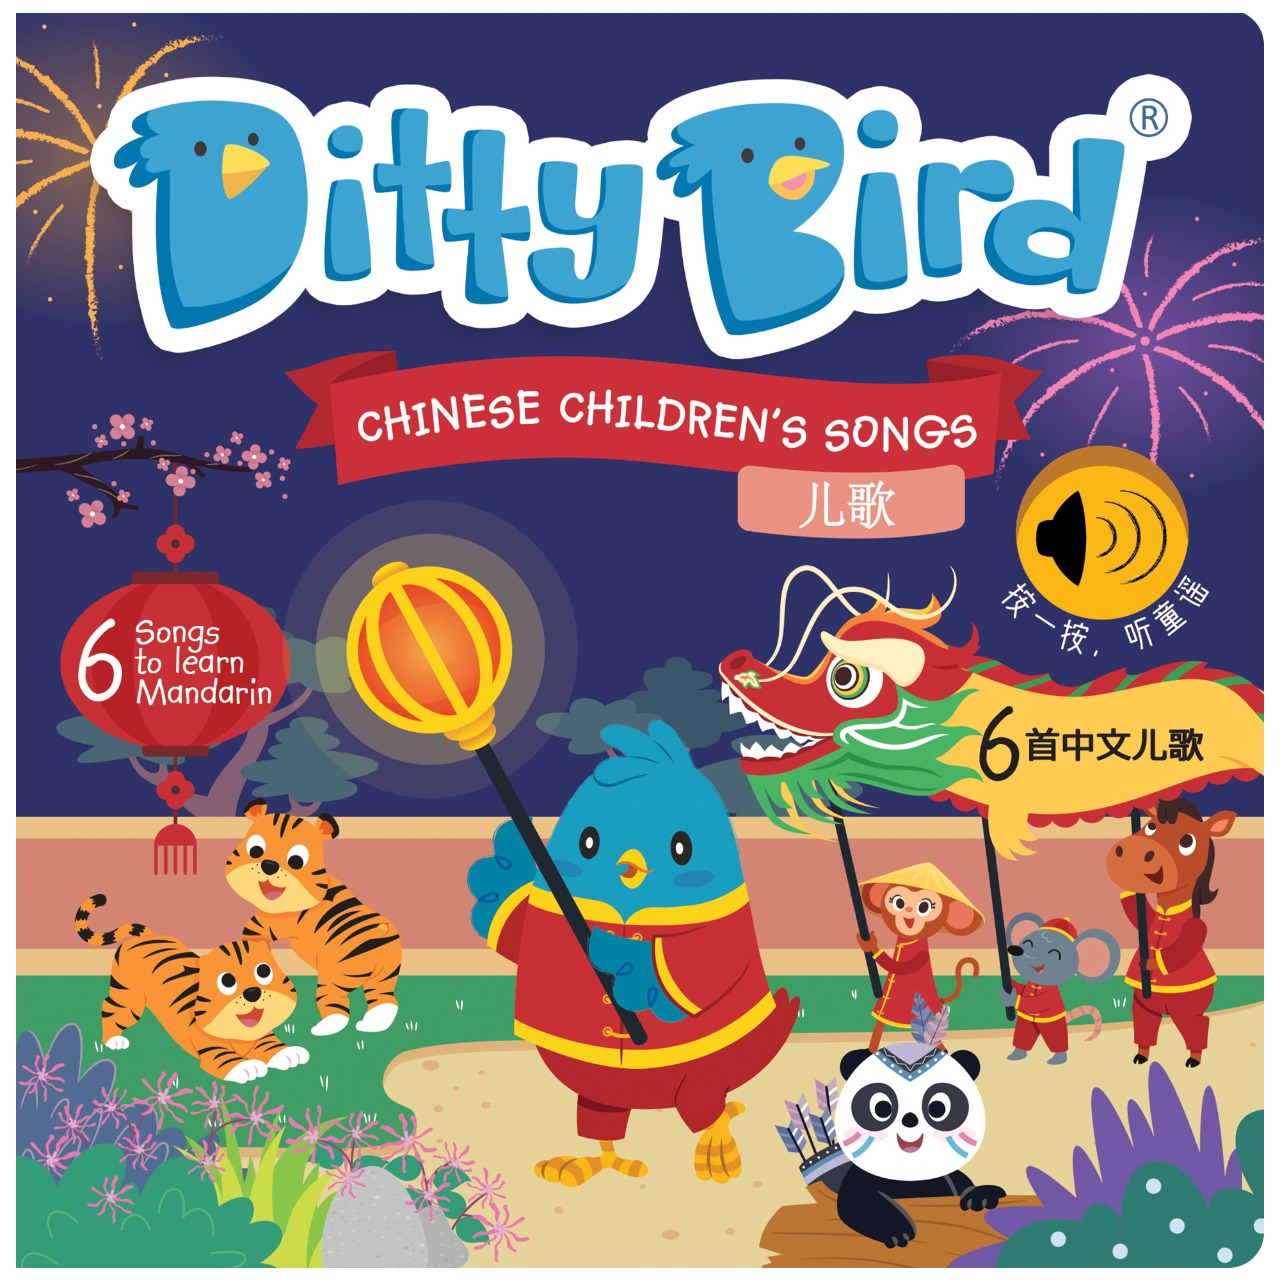 NEW! DITTY BIRD: Chinese Children's Songs in Mandarin